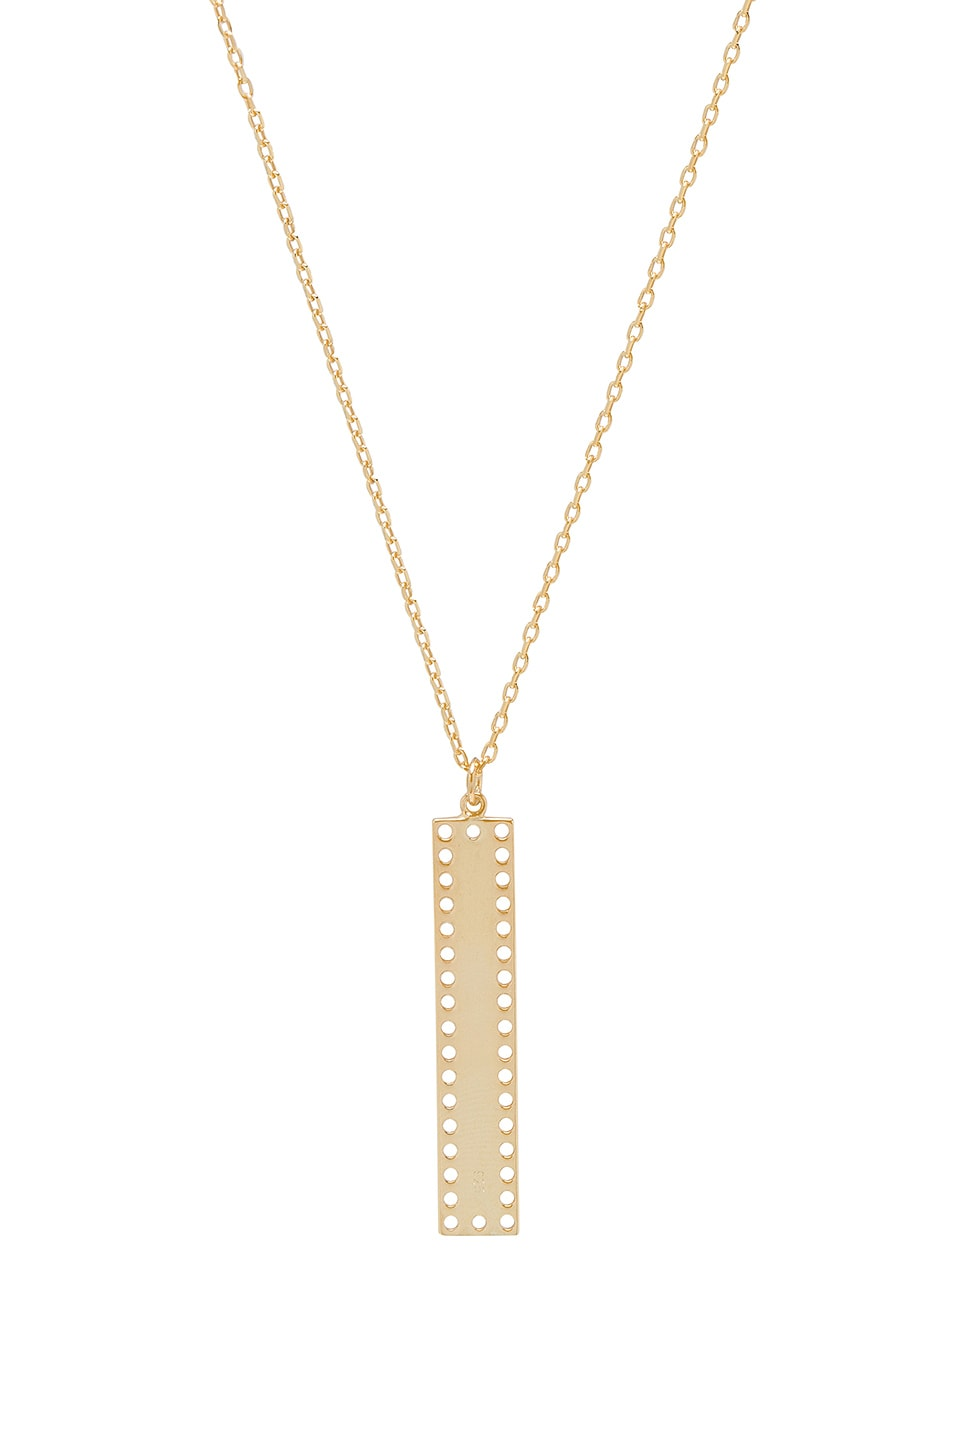 NATALIE B JEWELRY Dusk Bar Necklace in Metallic Gold